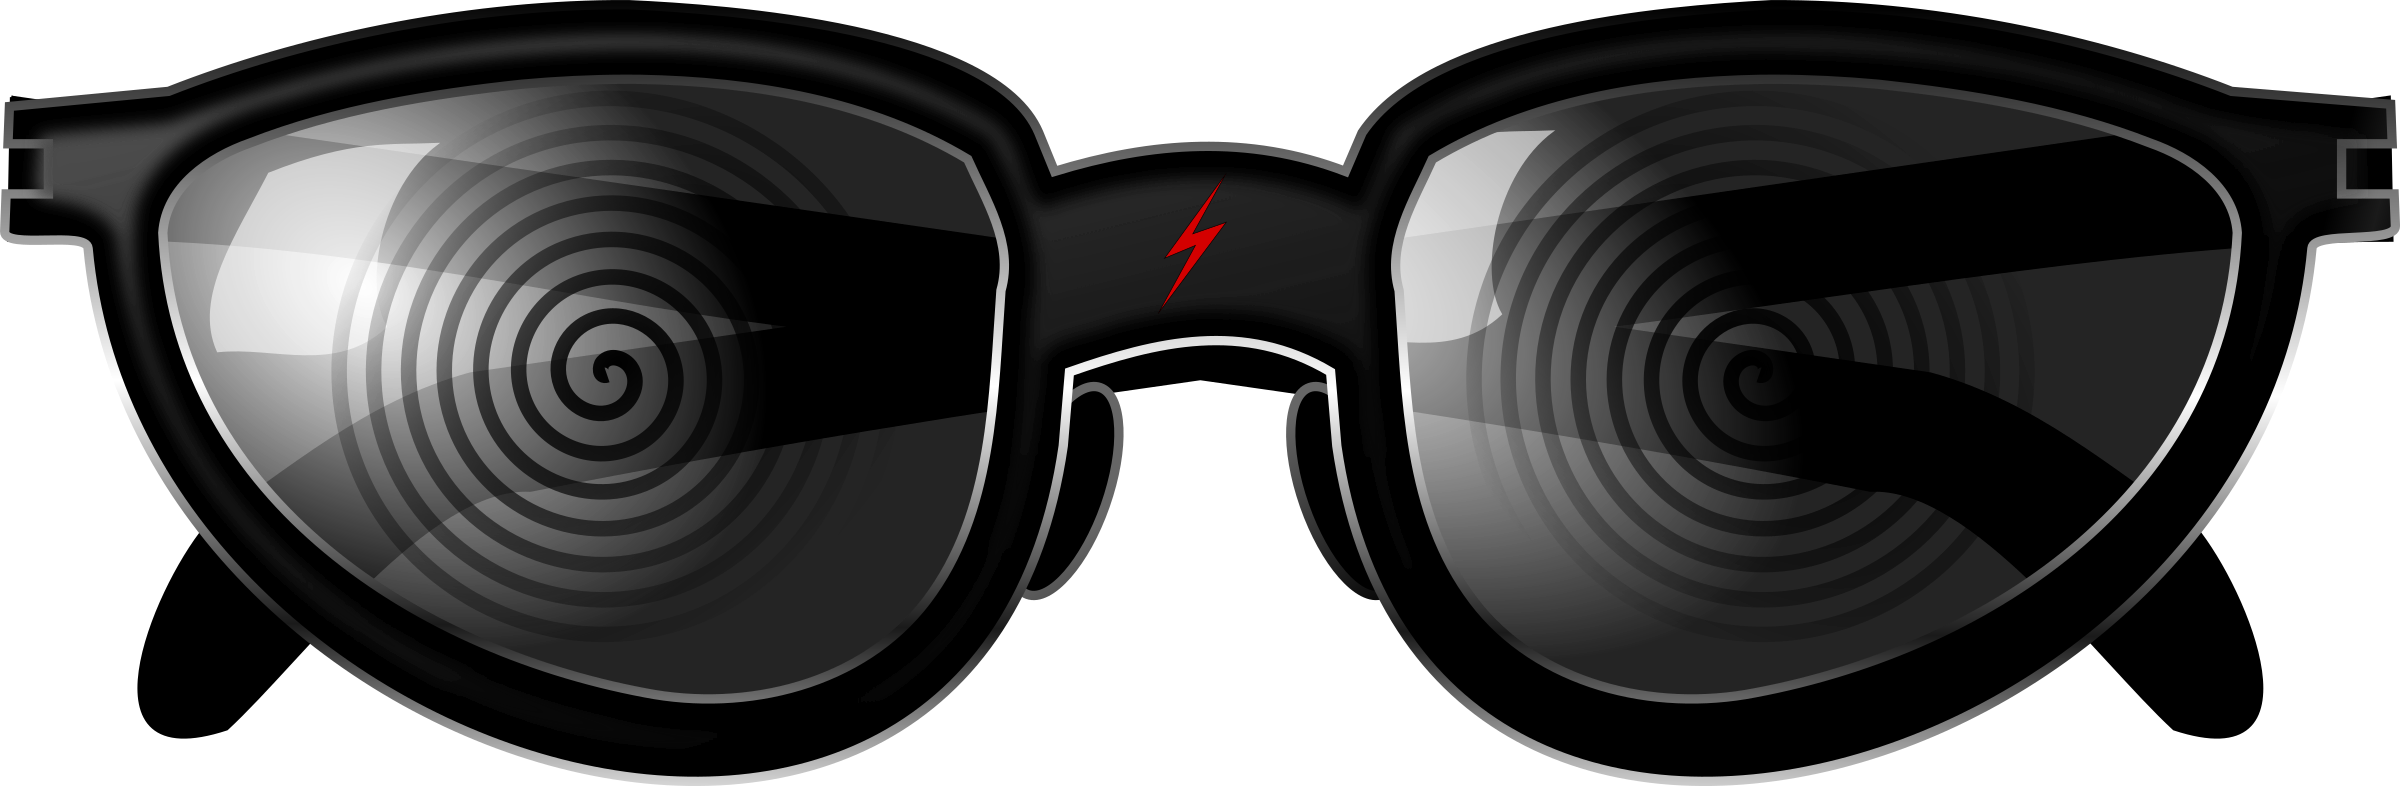 stylish sunglasses images. Vision clipart spex